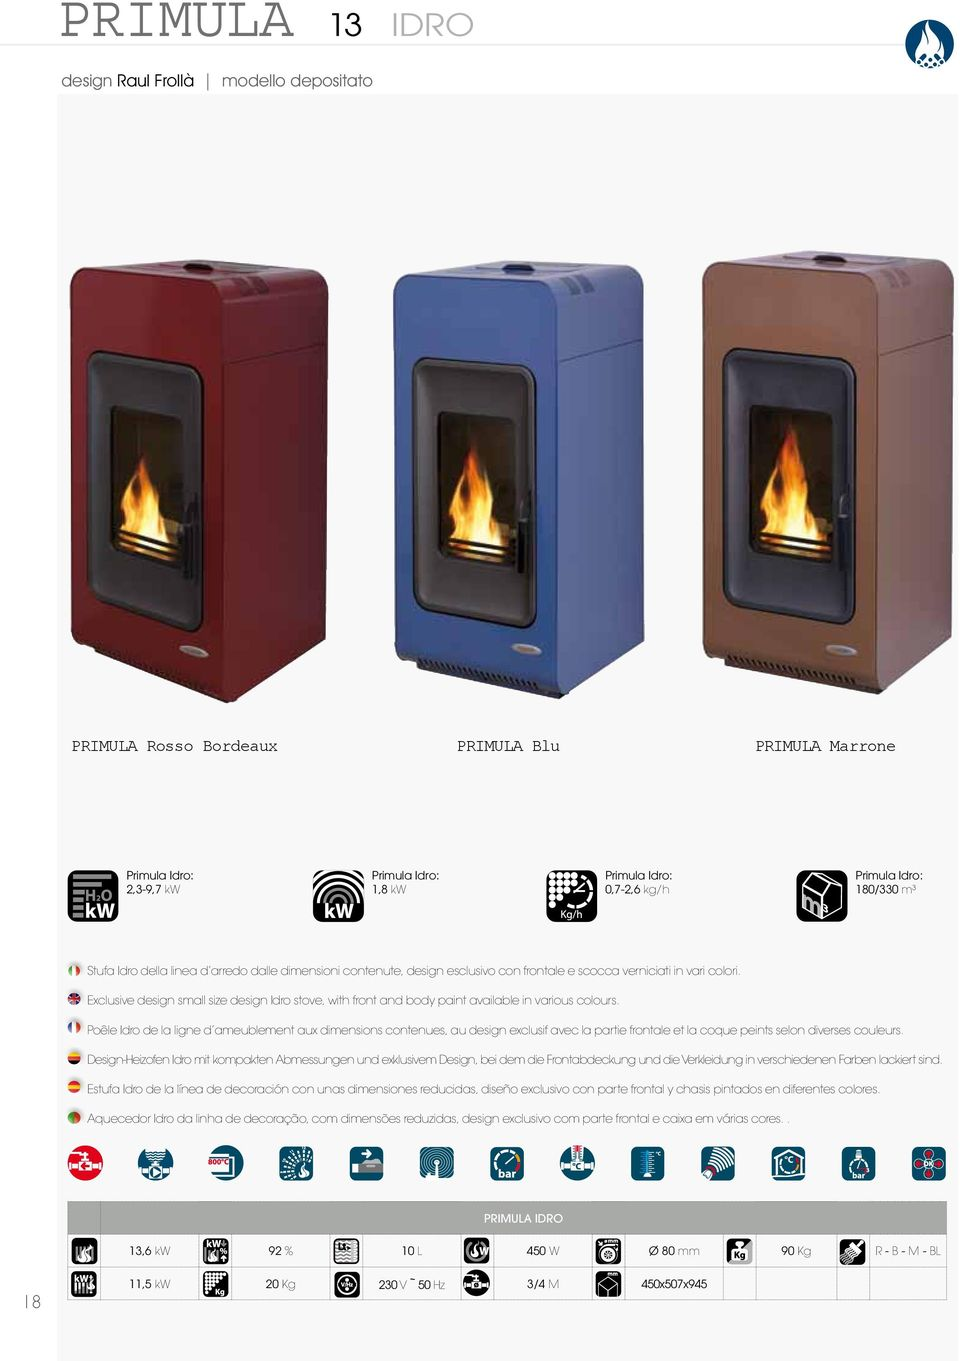 Exclusive design small size design Idro stove, with front and body paint available in various colours.